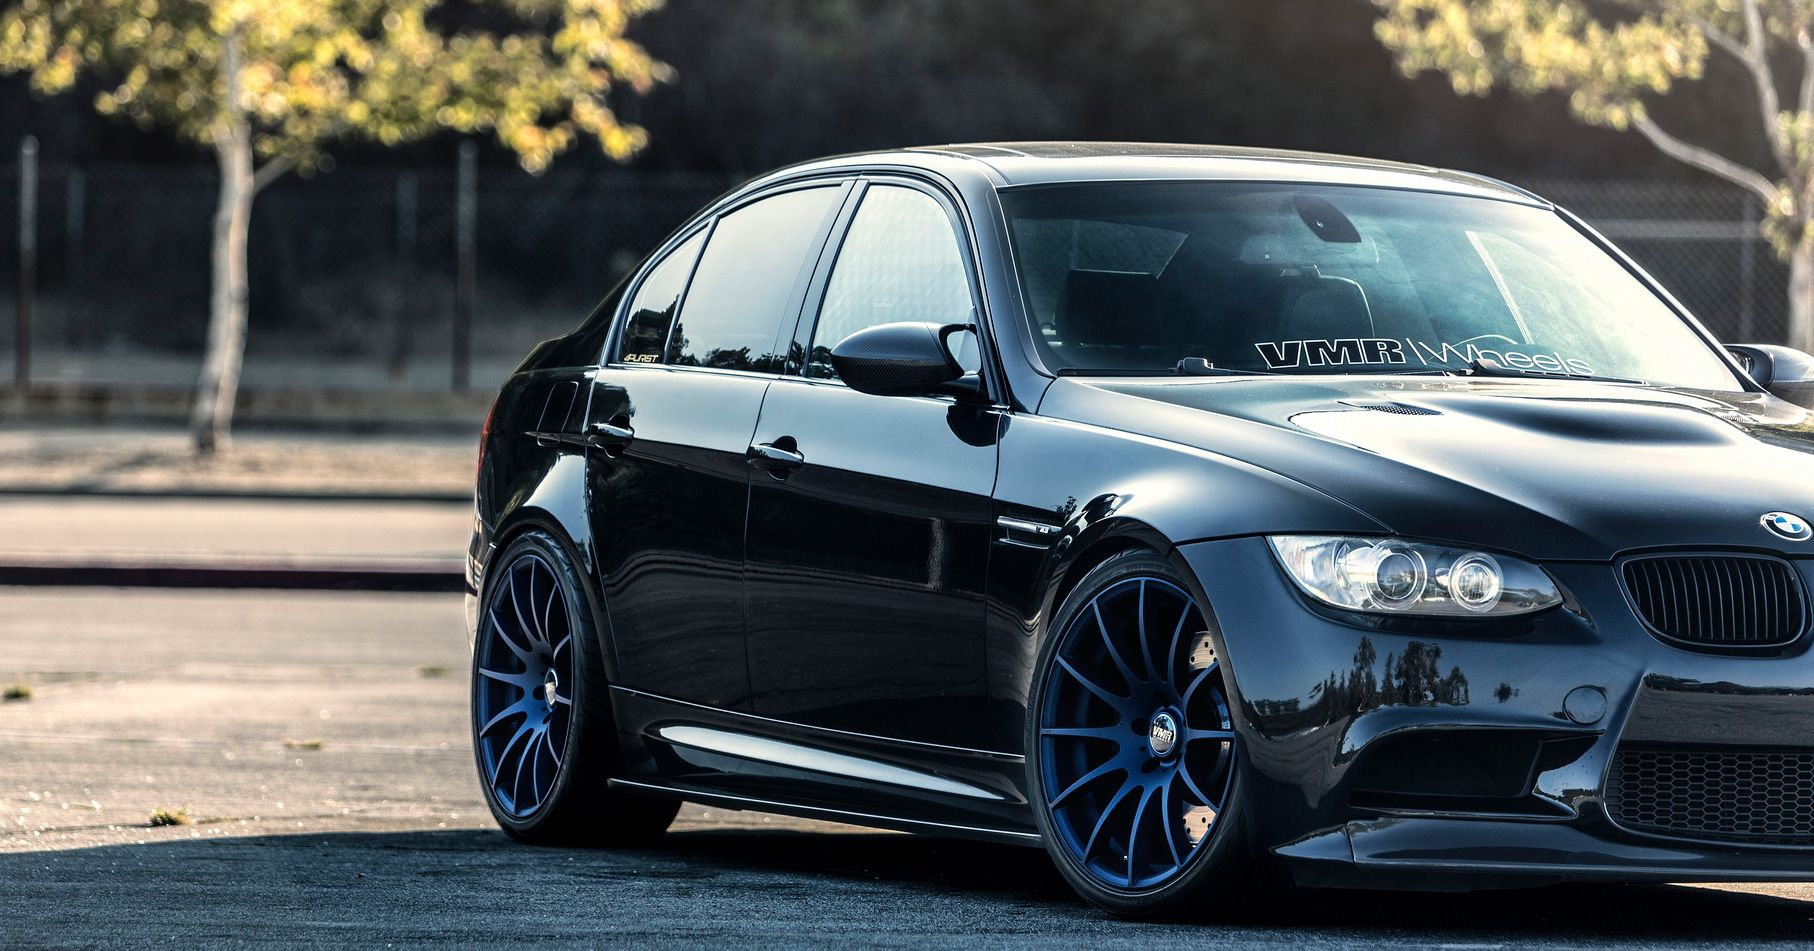 bmw e90 m3 jerez black with vmr 721 matte dark blue 19. Black Bedroom Furniture Sets. Home Design Ideas